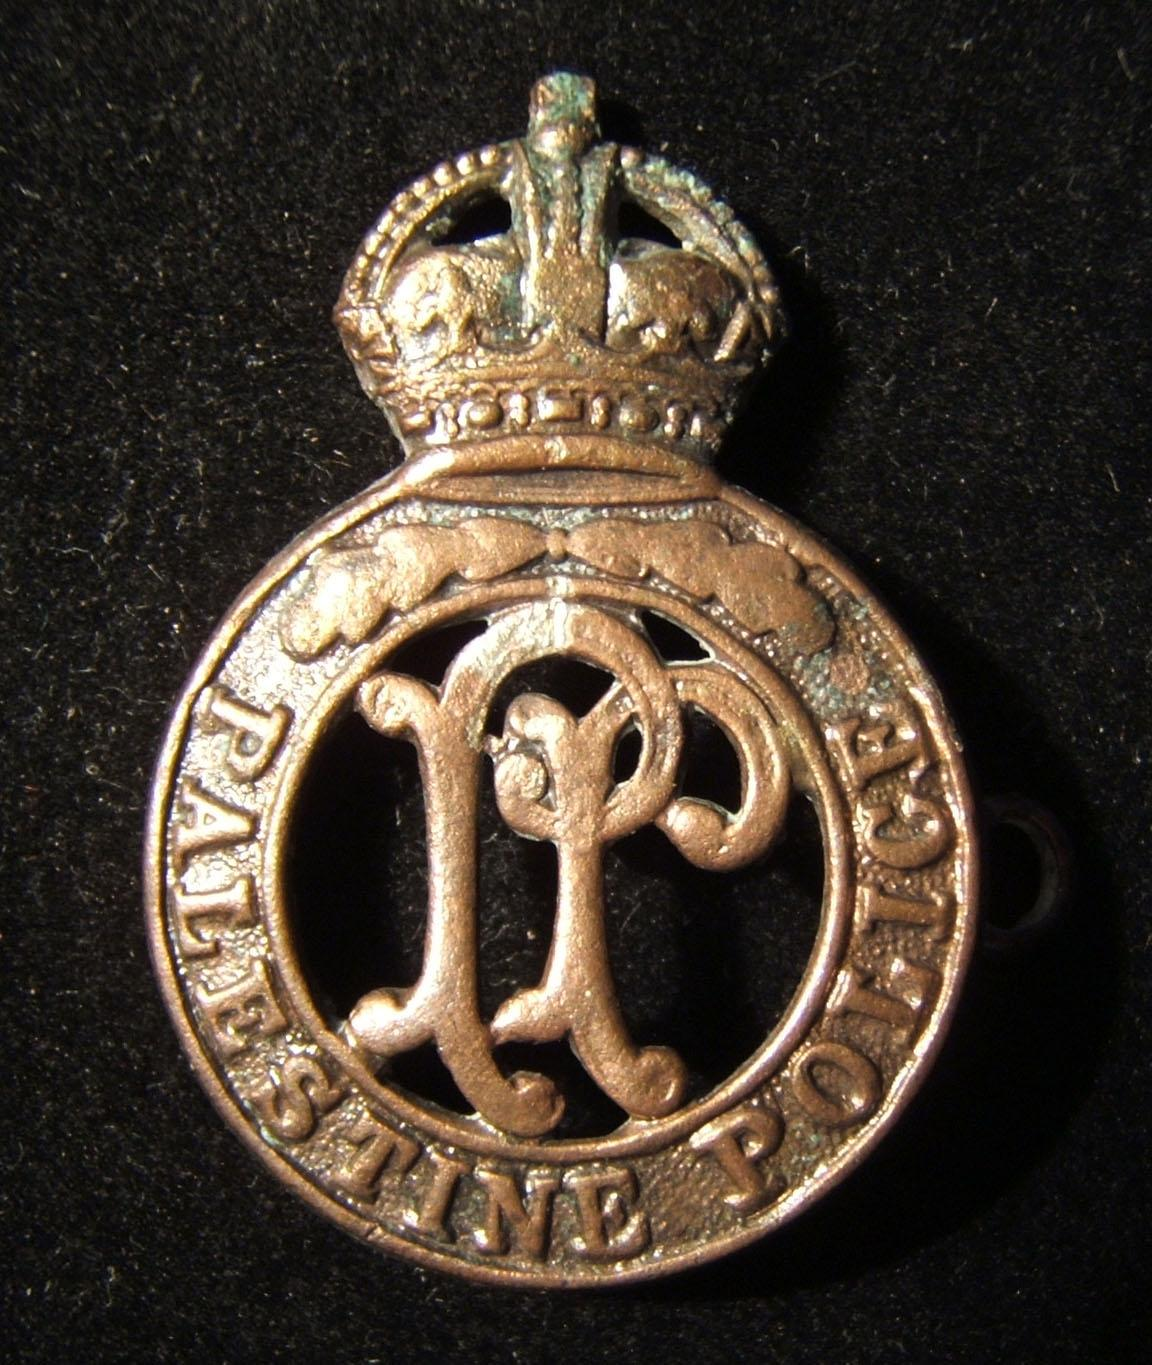 Rare Palestine Police Force copper cap badge with 2-pronged back (one missing); size: 29.5 x 43.5mm; weight: 6.8g. Maker marked